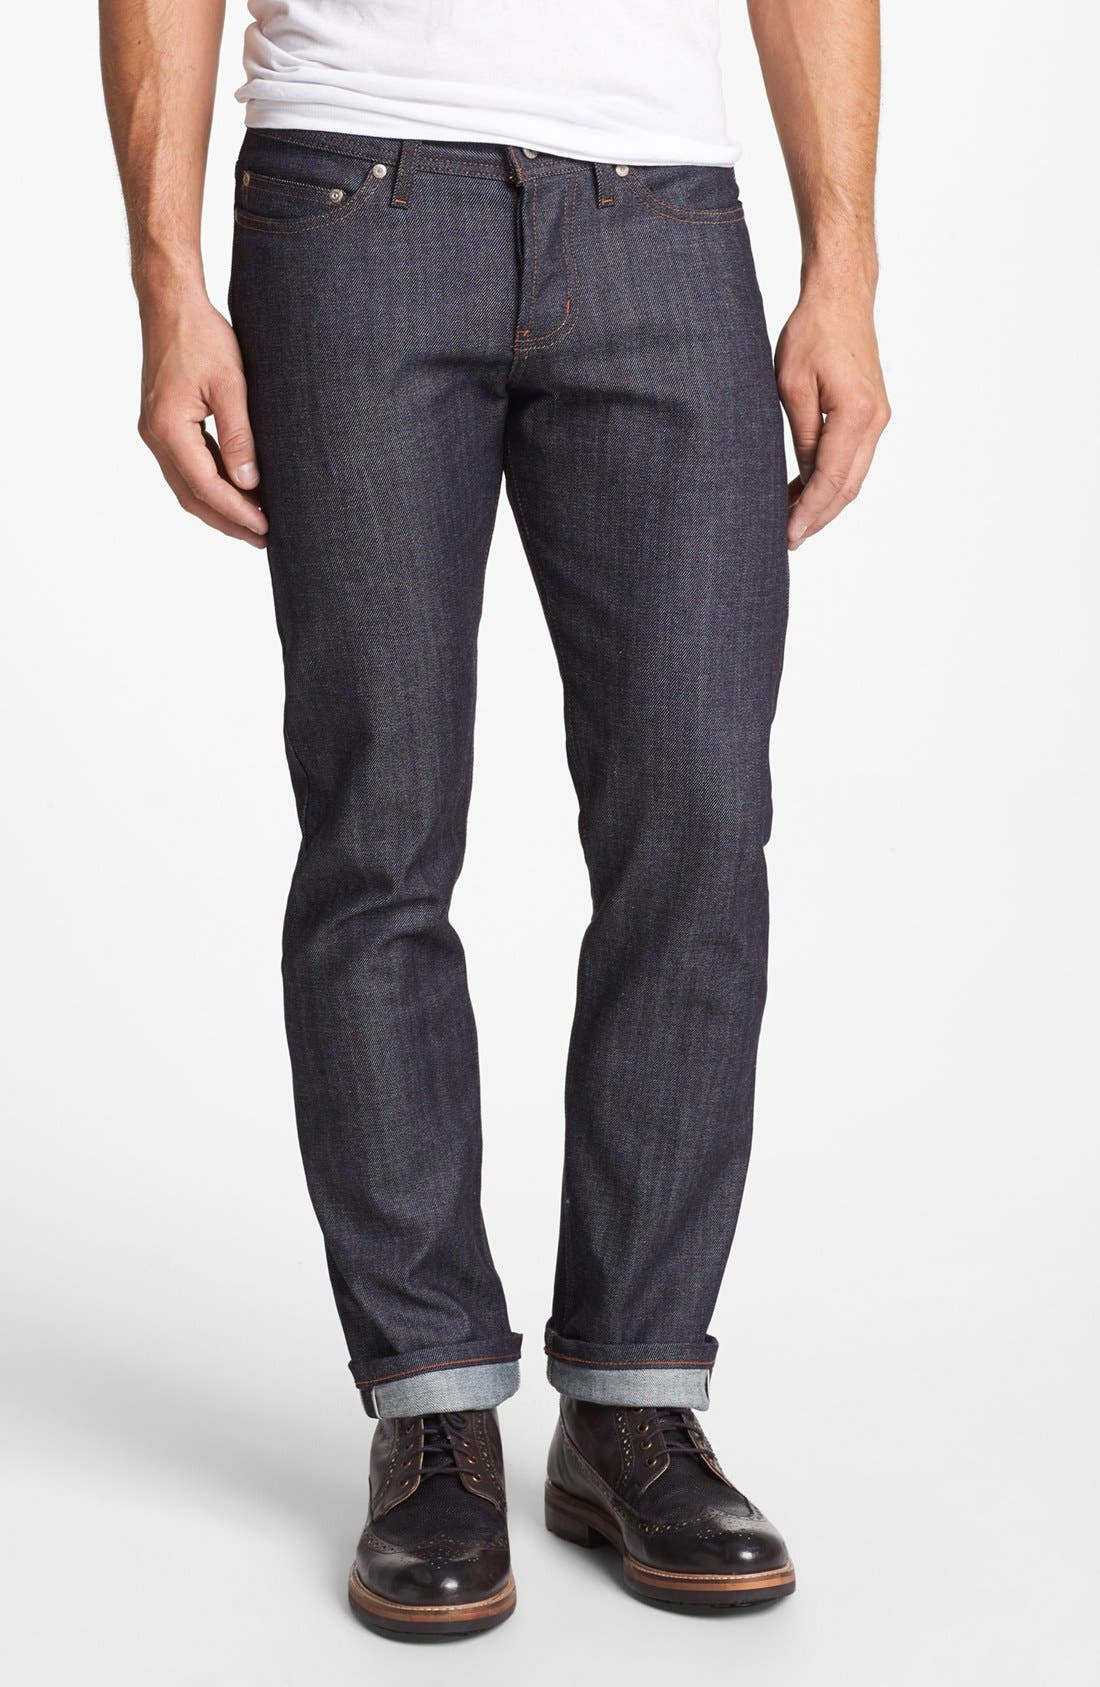 Naked & Famous Denim Weird Guy Slim Fit Raw Jeans (Stretch Selvedge)